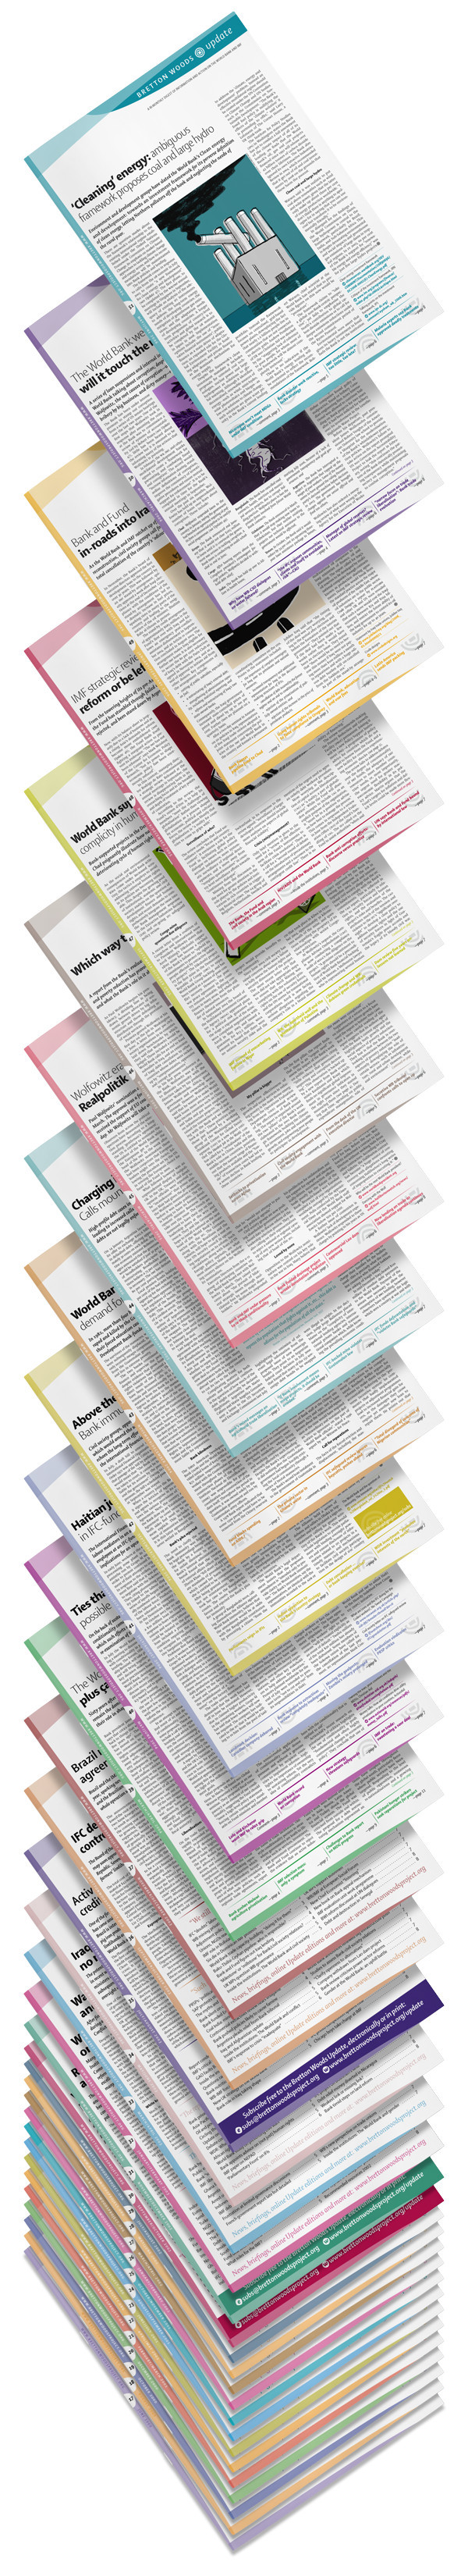 a4 newsletter editorial enigma shaker two-colour pantone